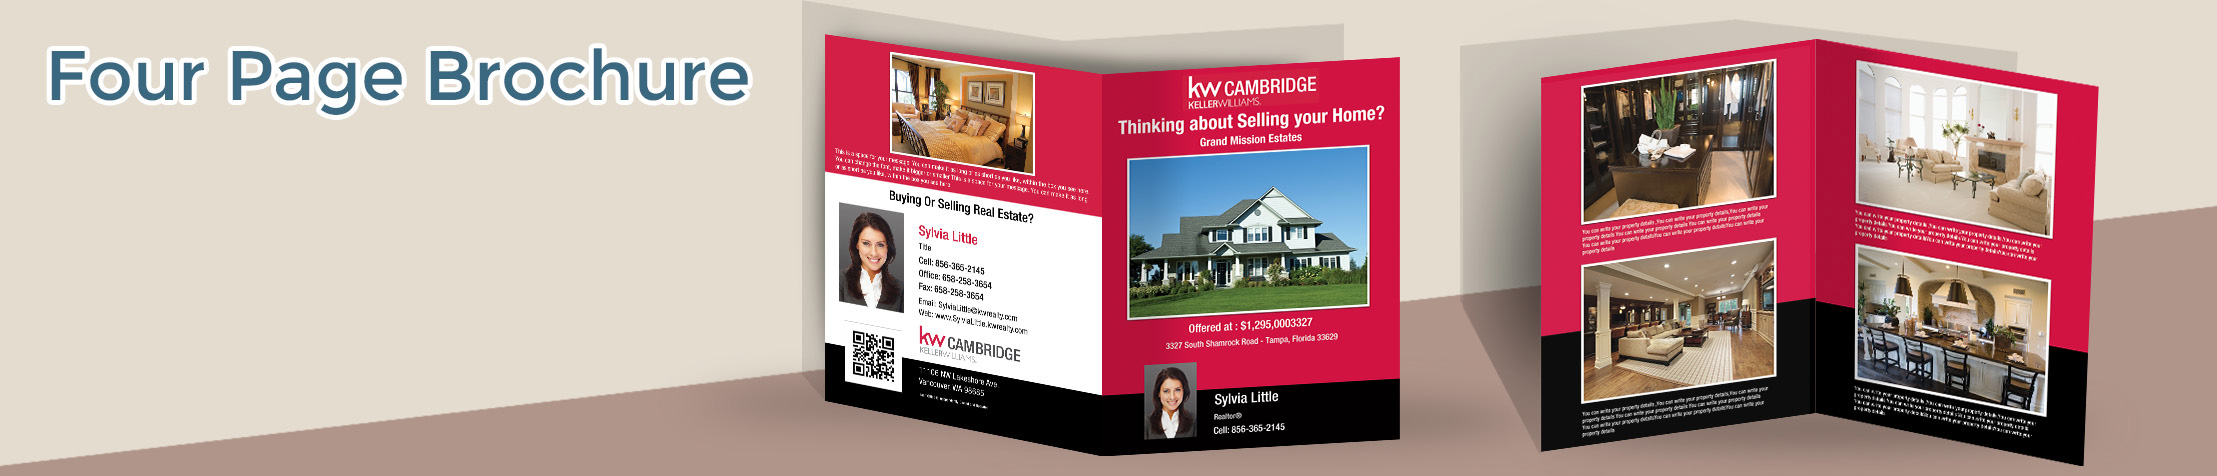 Keller Williams Real Estate Flyers and Brochures - KW approved vendor four page brochure templates for open houses and marketing | BestPrintBuy.com